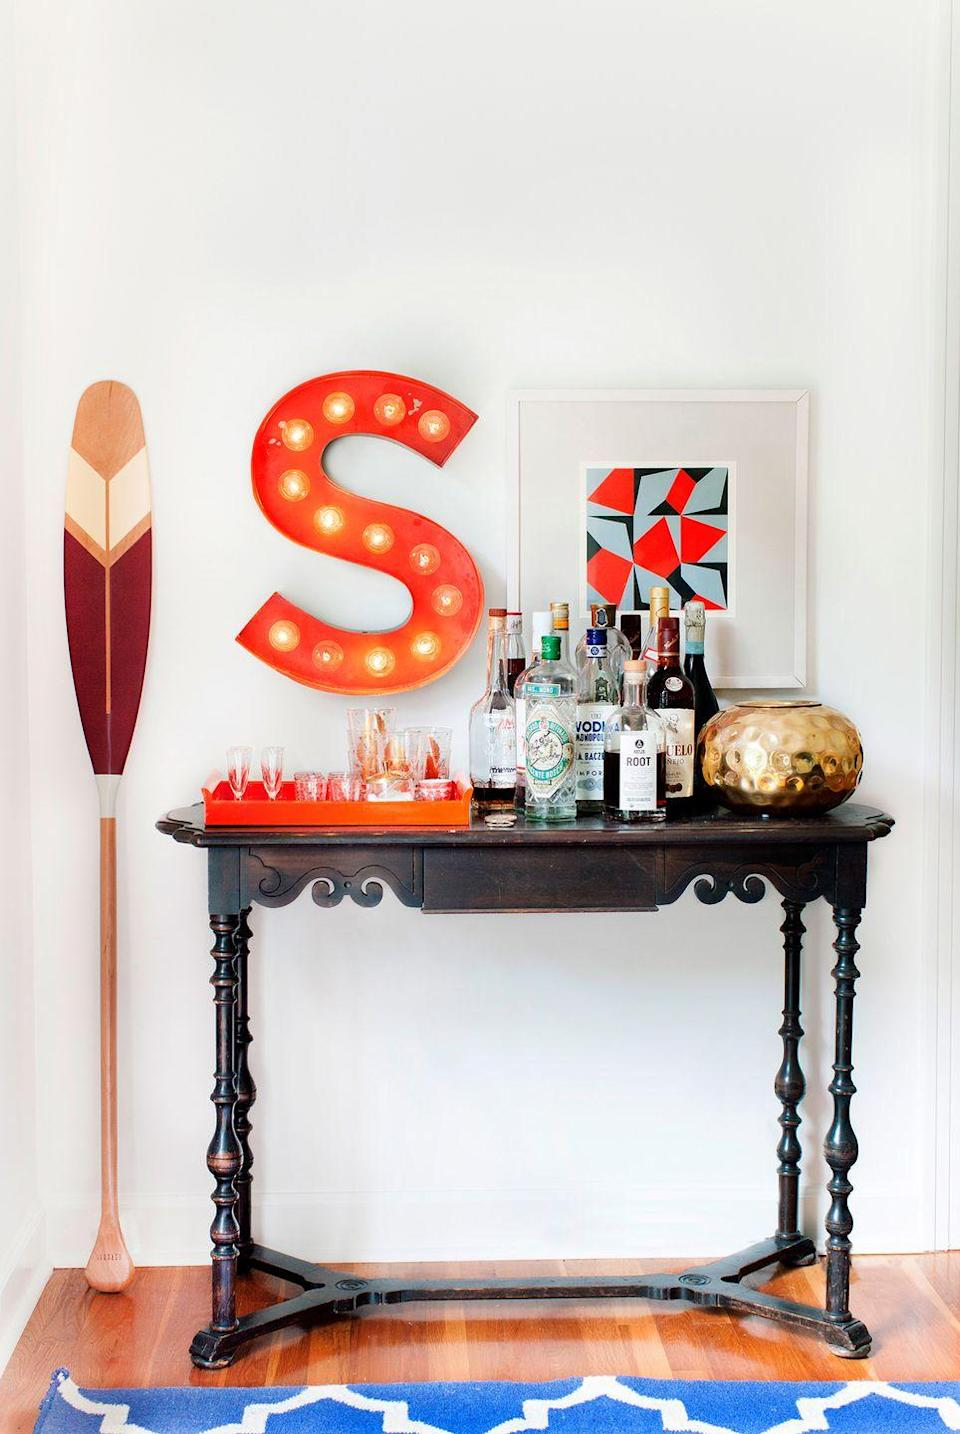 <p>Sometimes, all it takes is a personal touch to pull a room together. Take your bar cart to the next level with a retro-inspired marquee letter, colorful wall art, and a decorative oar to bring style your space.</p>